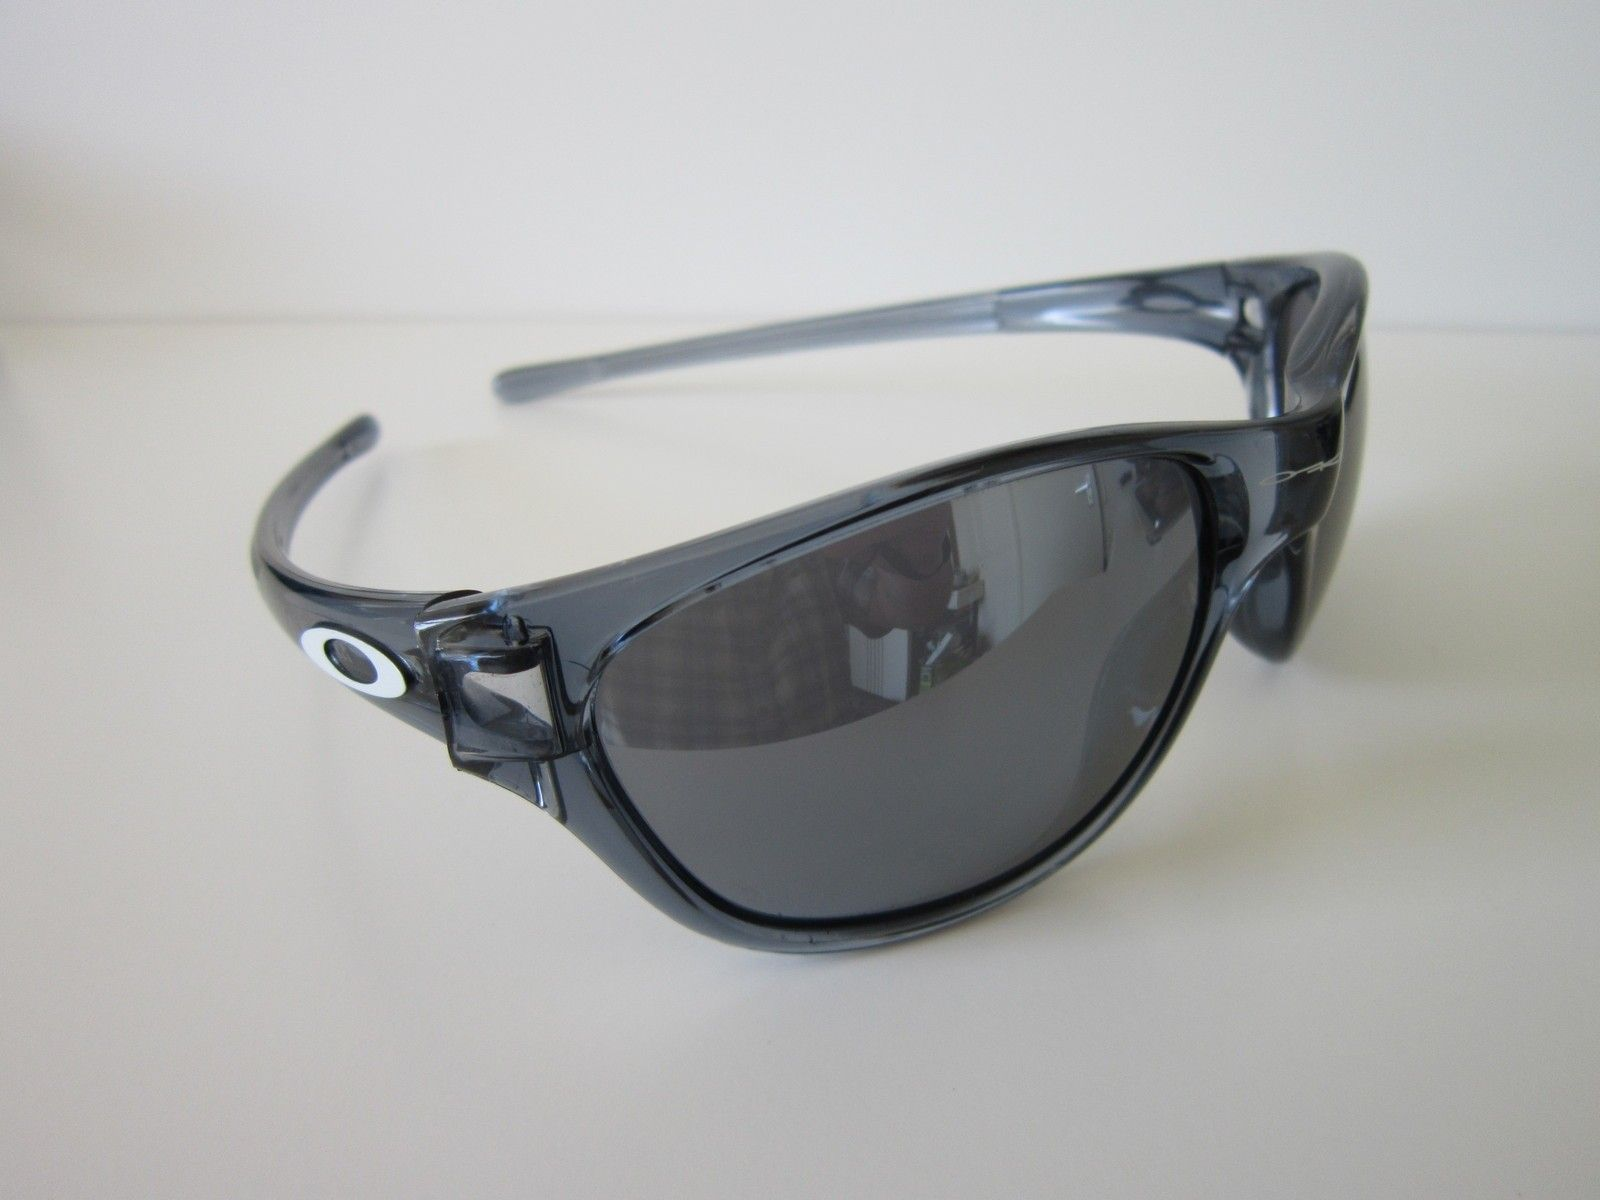 Another new 'New' Frogskin - IMG_4714.JPG